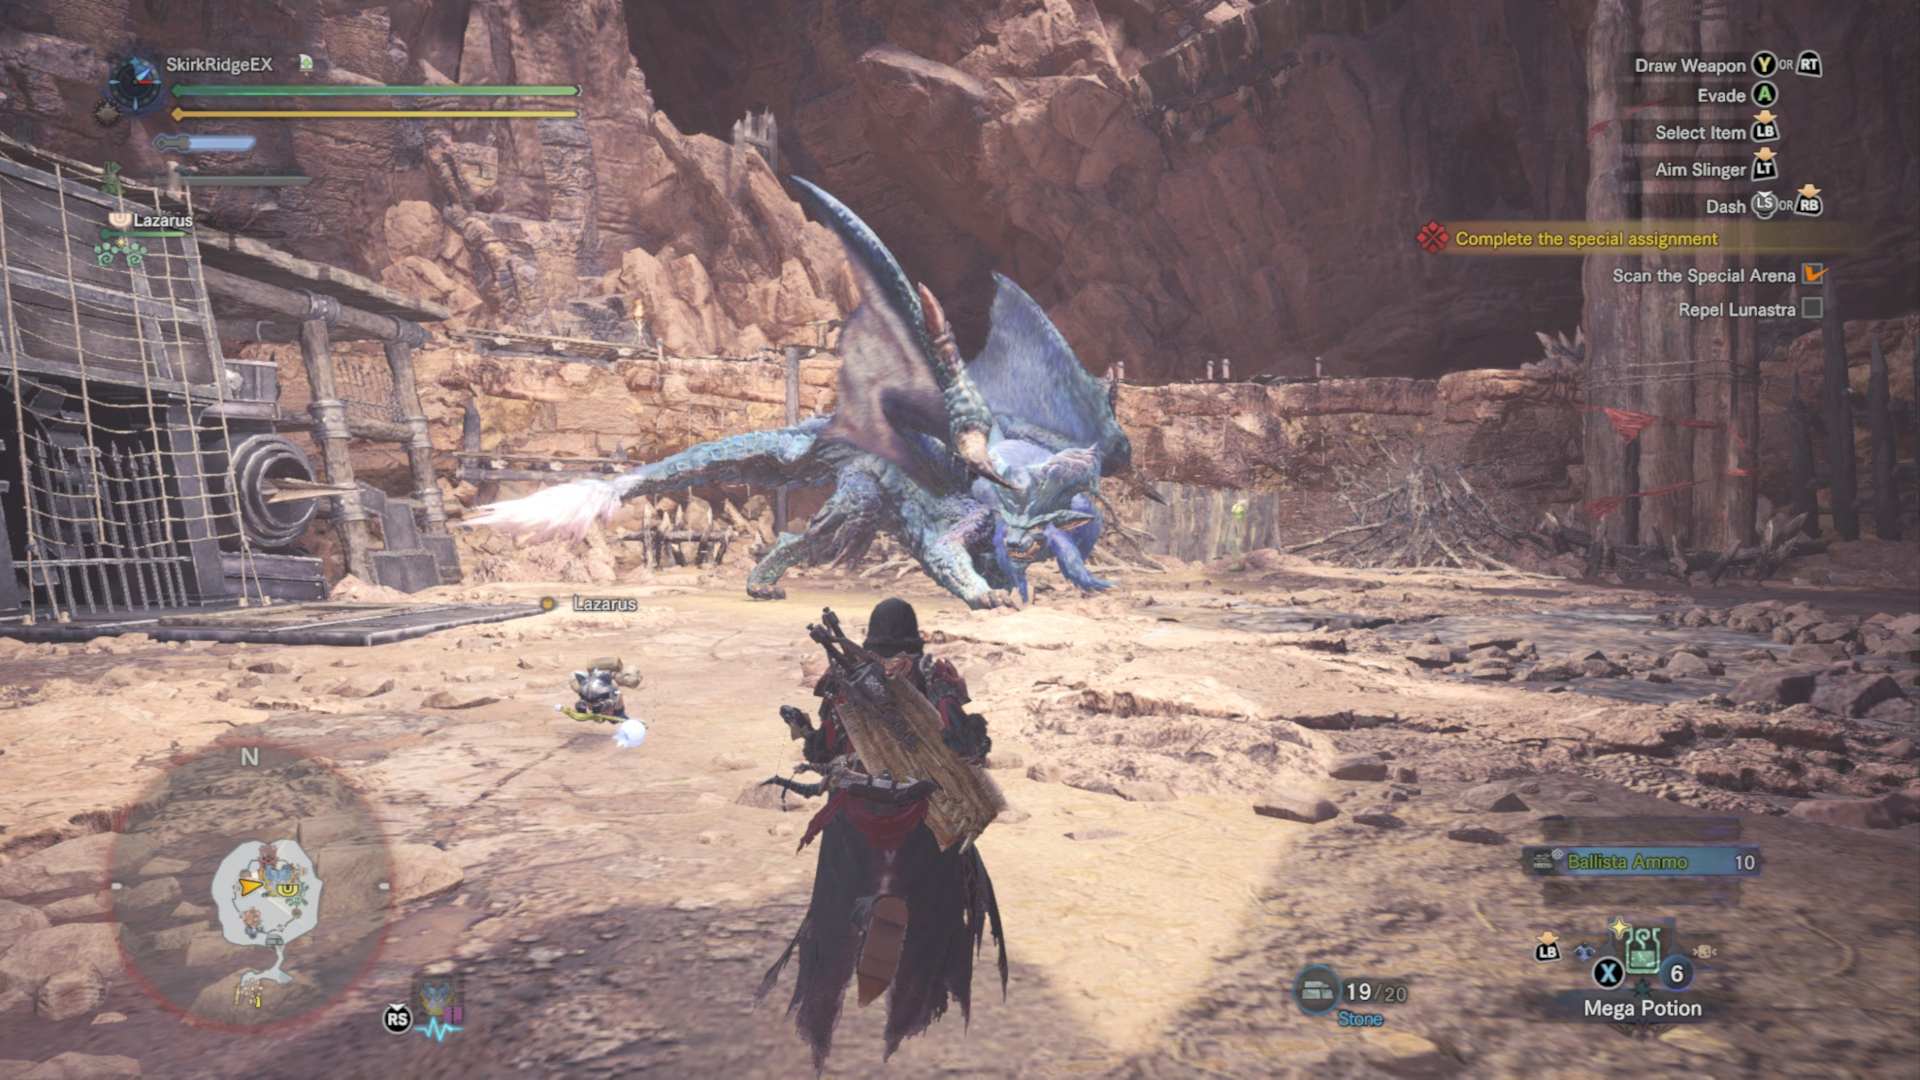 Fighting Lunastra in the arena.